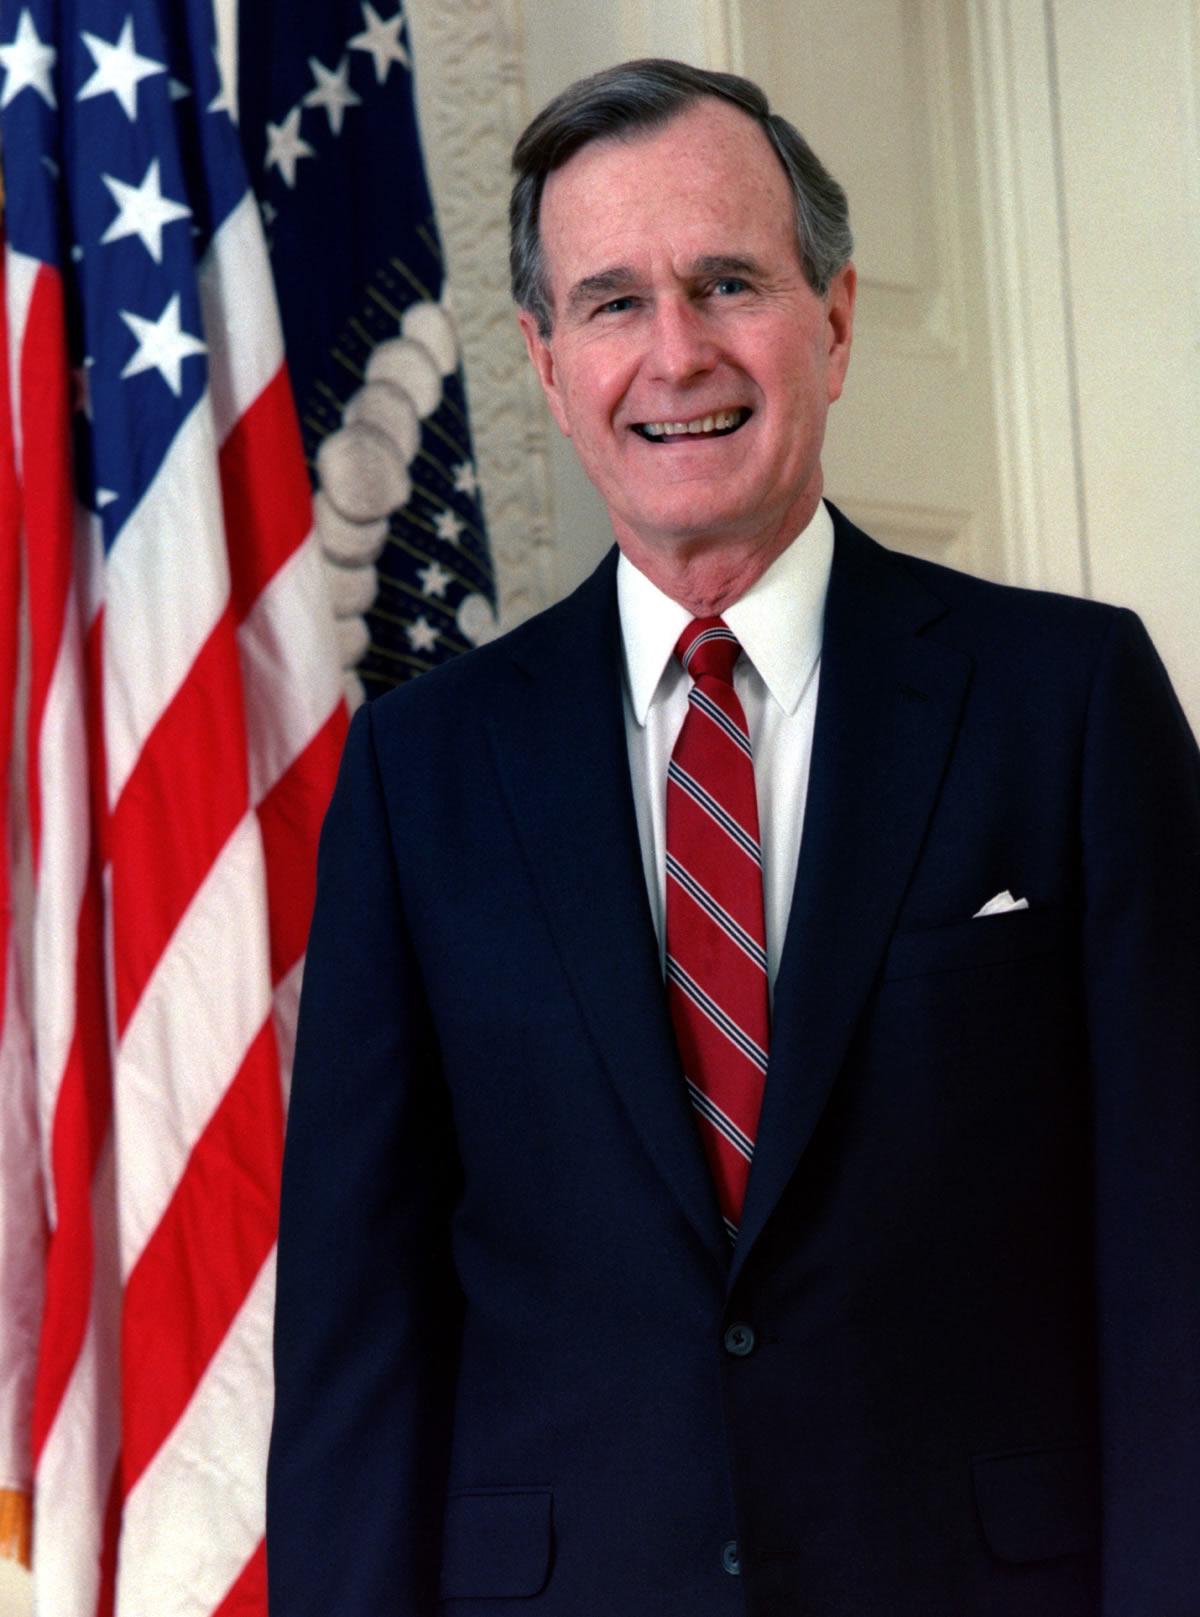 George H.W. Bush, President of the United States, 1989 official portrait